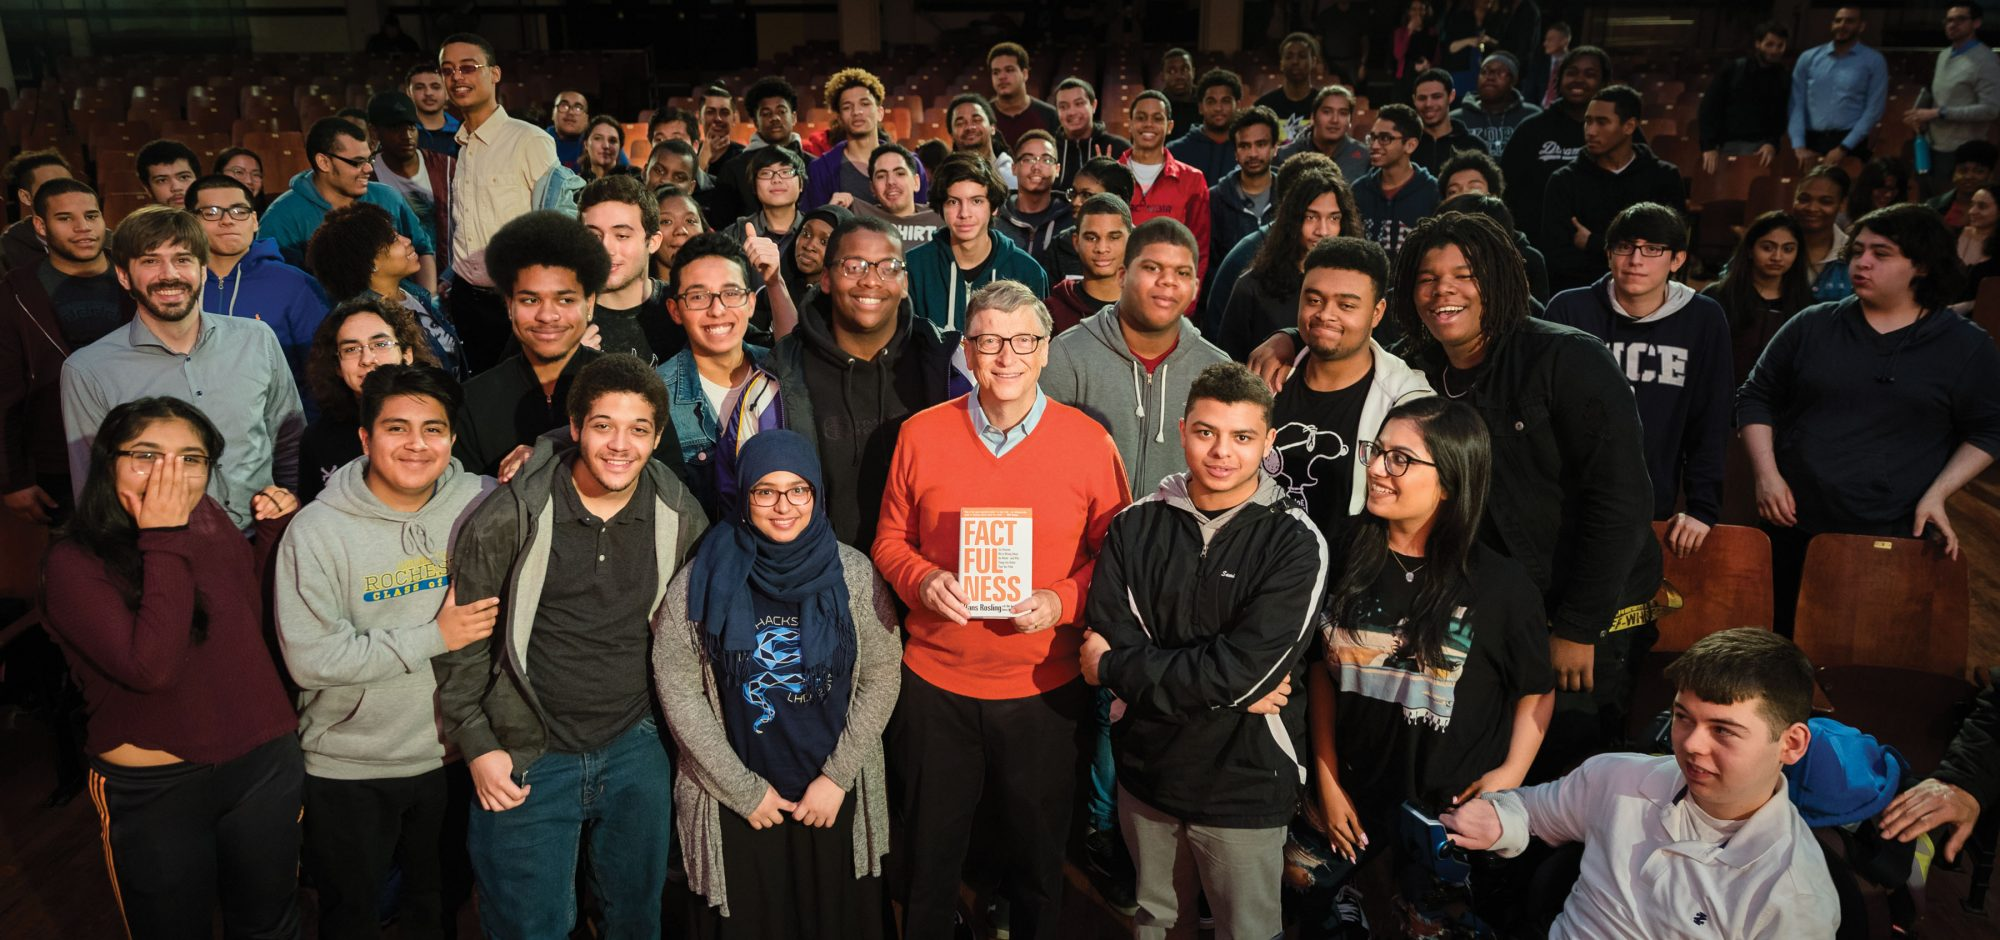 Bill Gates_Academy for Software Engineering NYC_May 2018_Credit The Gates Notes LLC